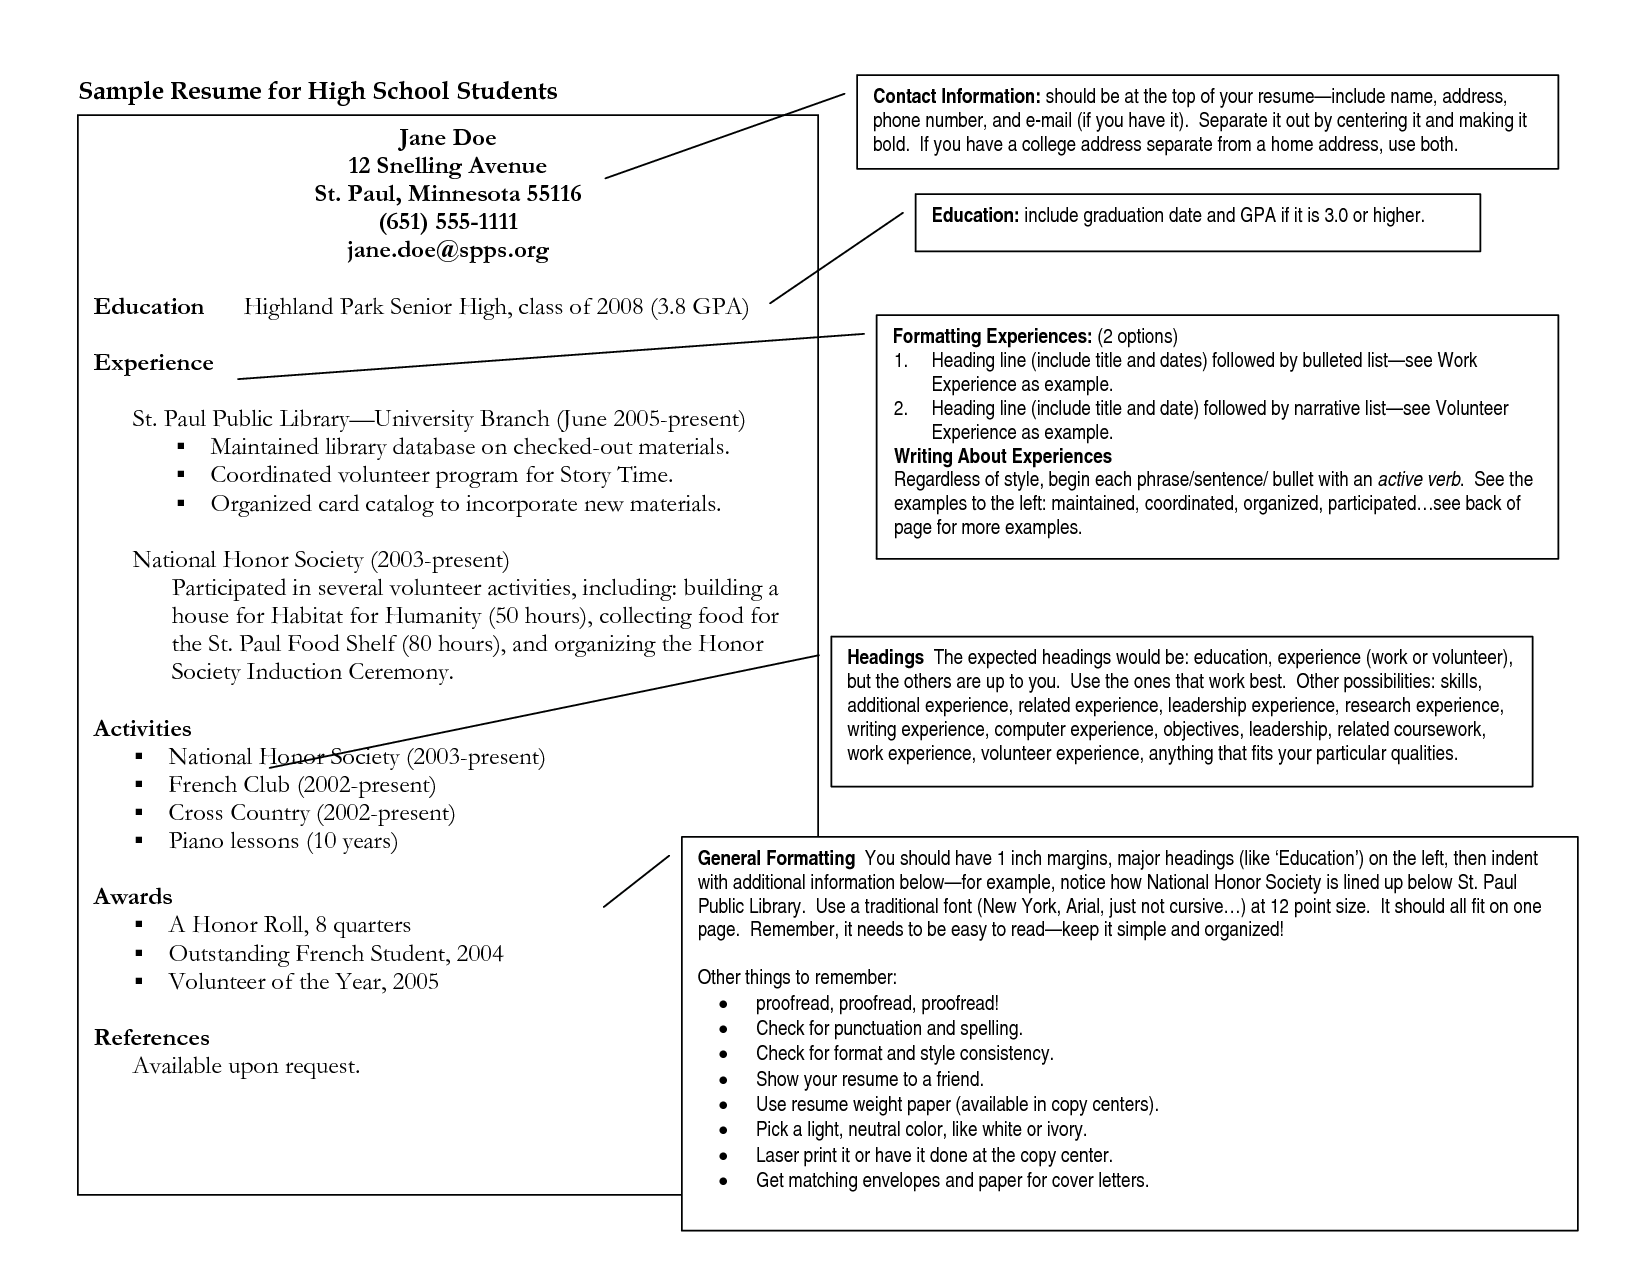 resume guideline sample resume cover letter tips - Public Librarian Cover Letter